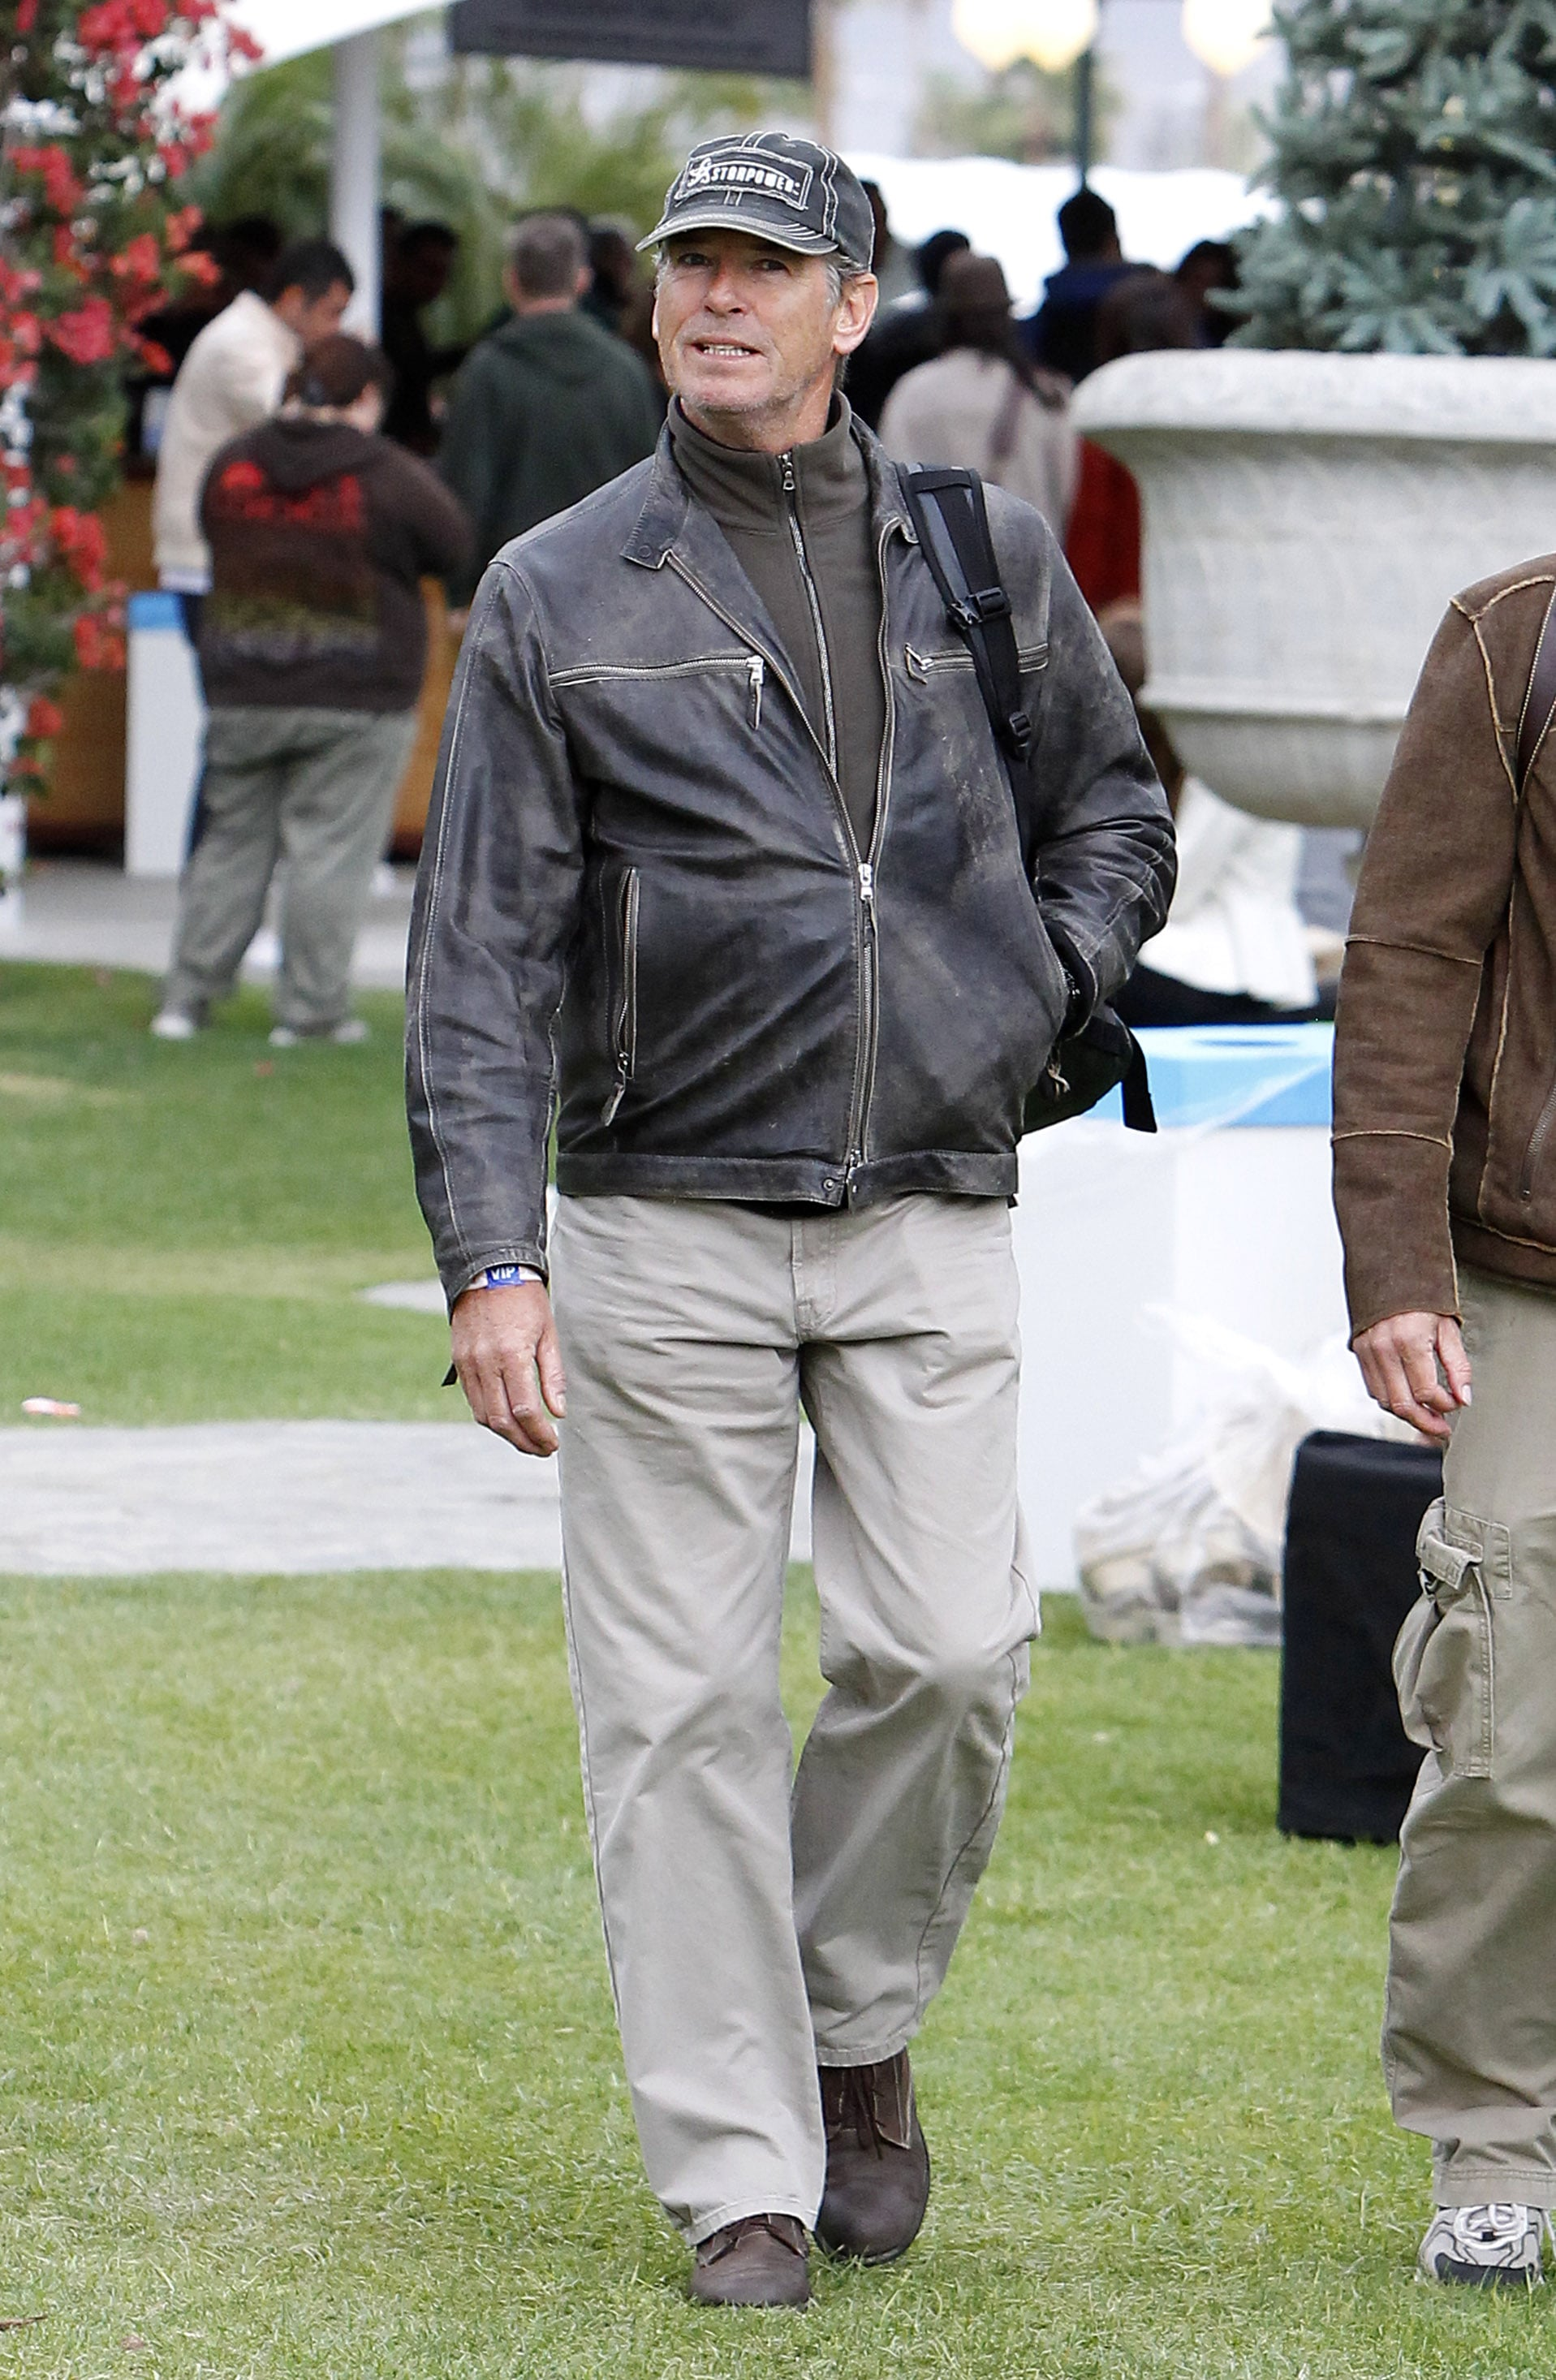 Pierce Brosnan carried a backpack on the first day of Coachella. He arrived early and hung out in the VIP section Friday.